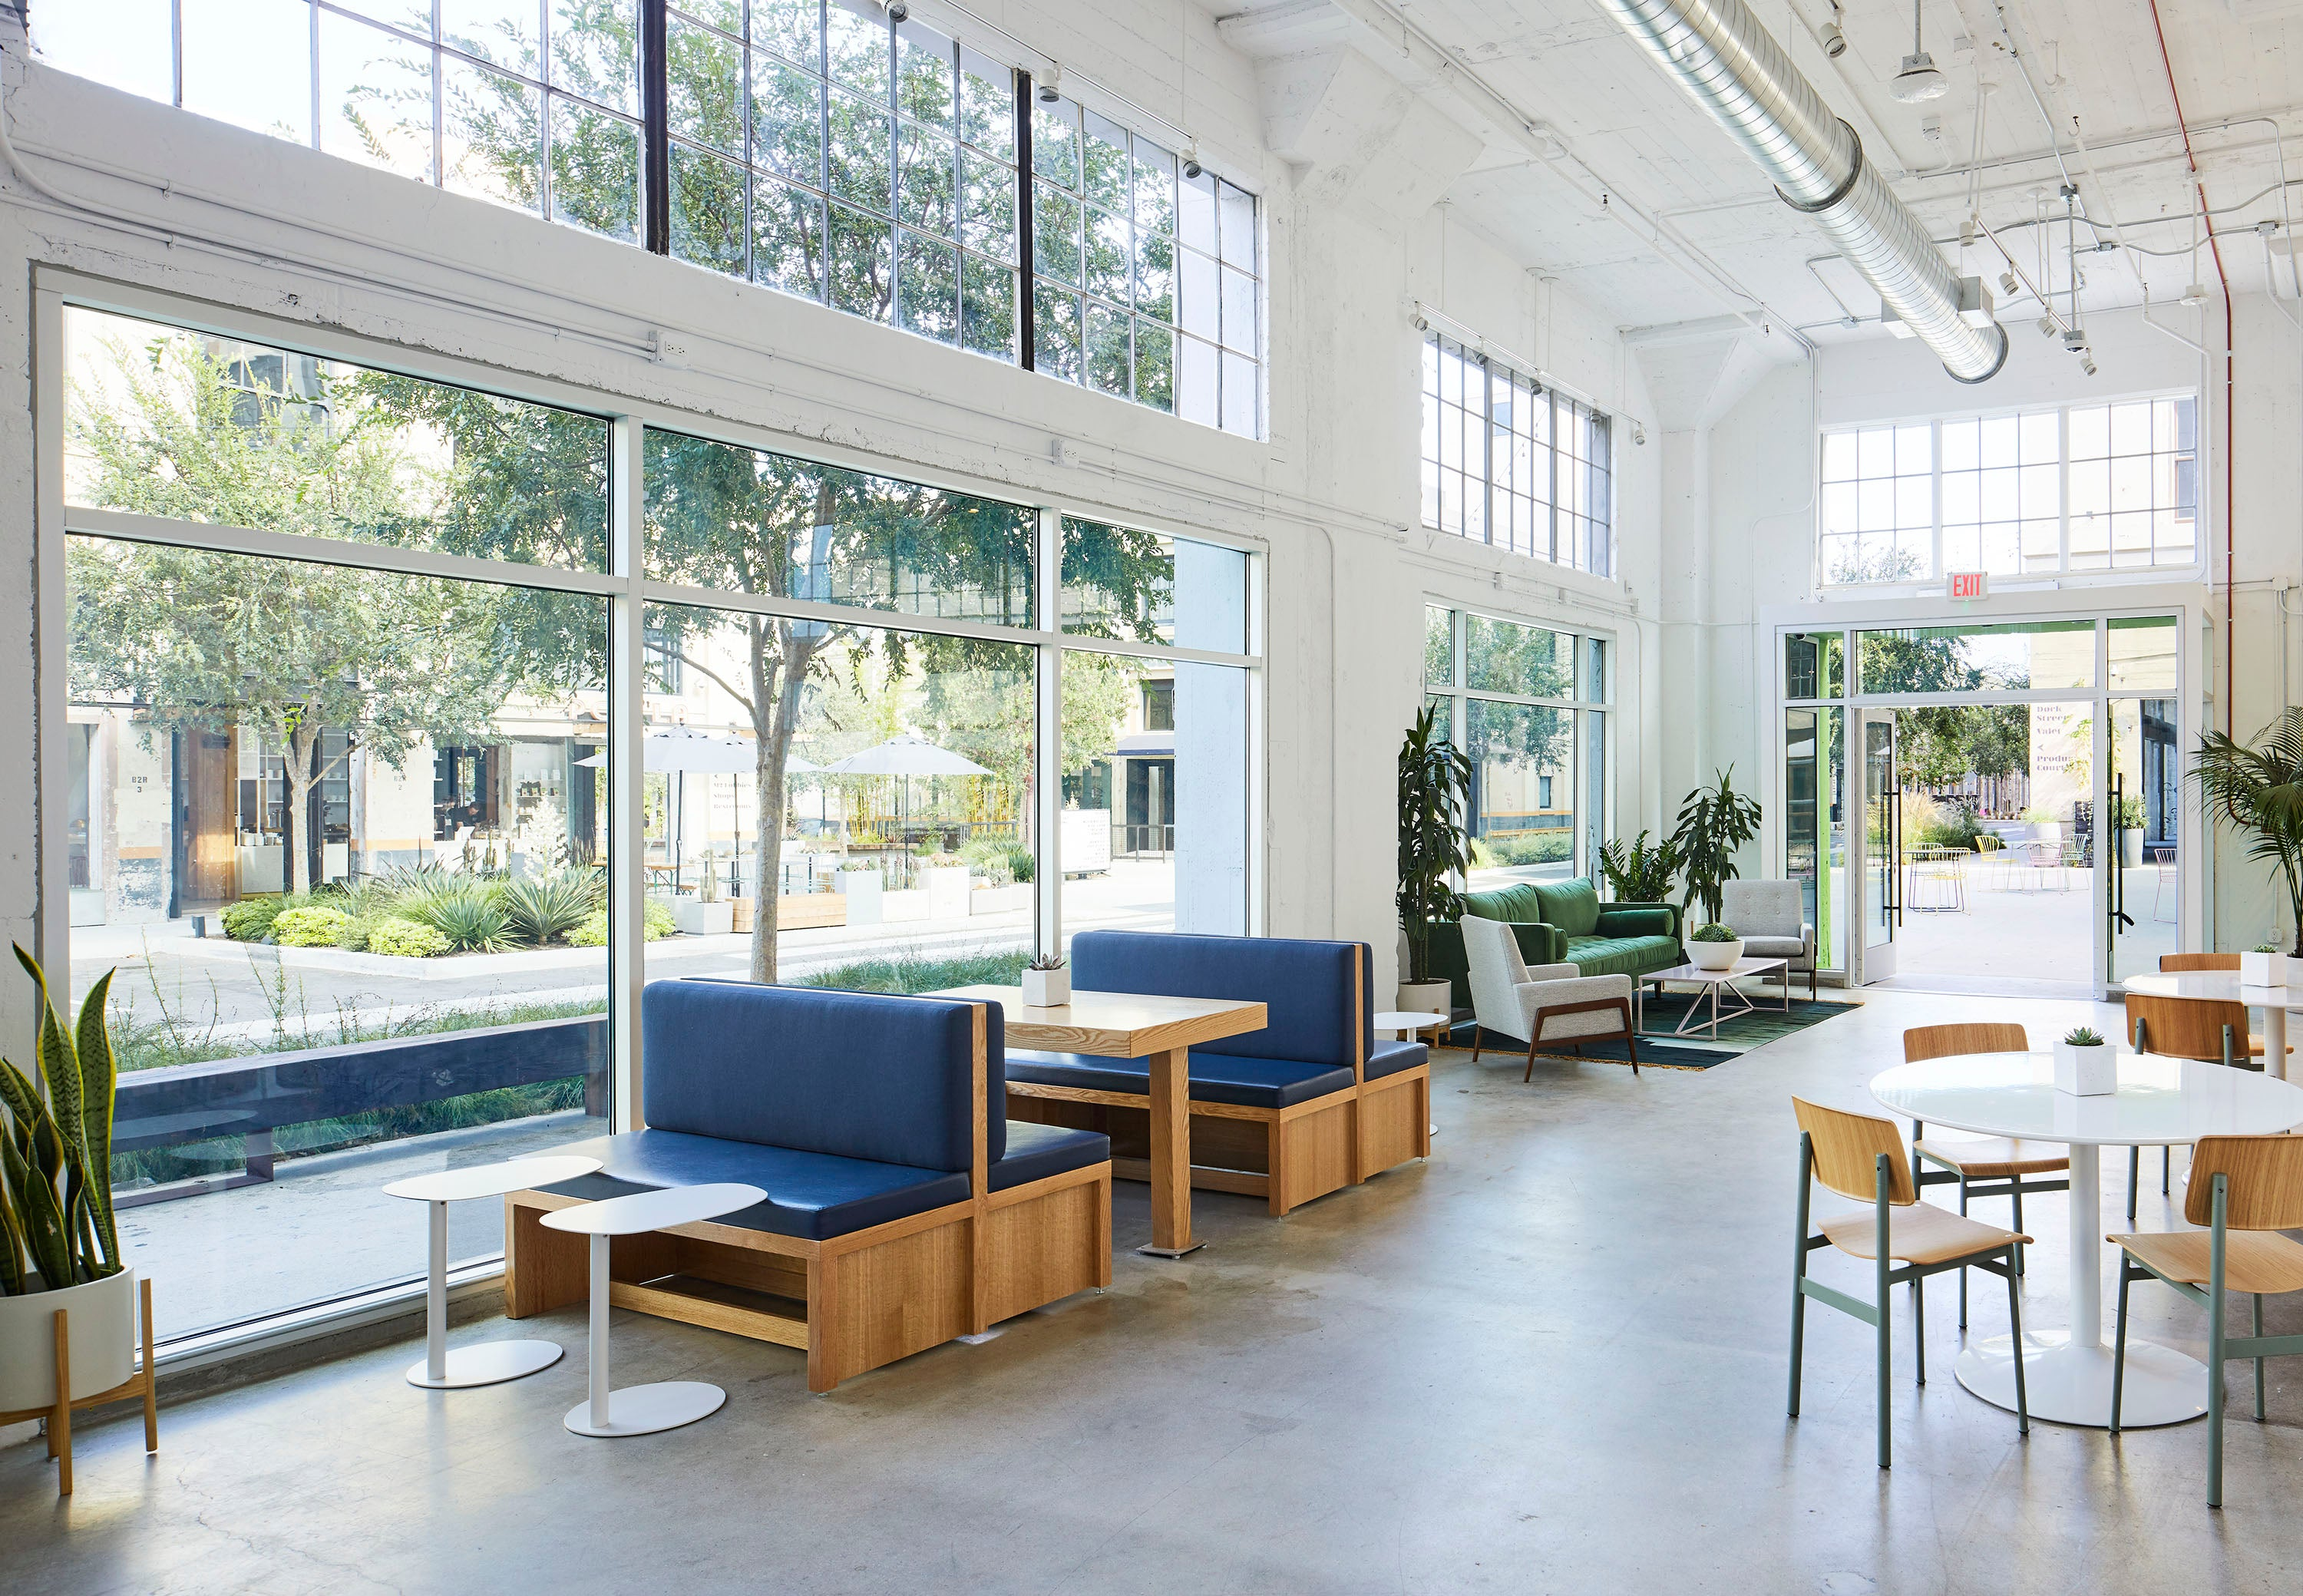 Shopify in LA coworking space